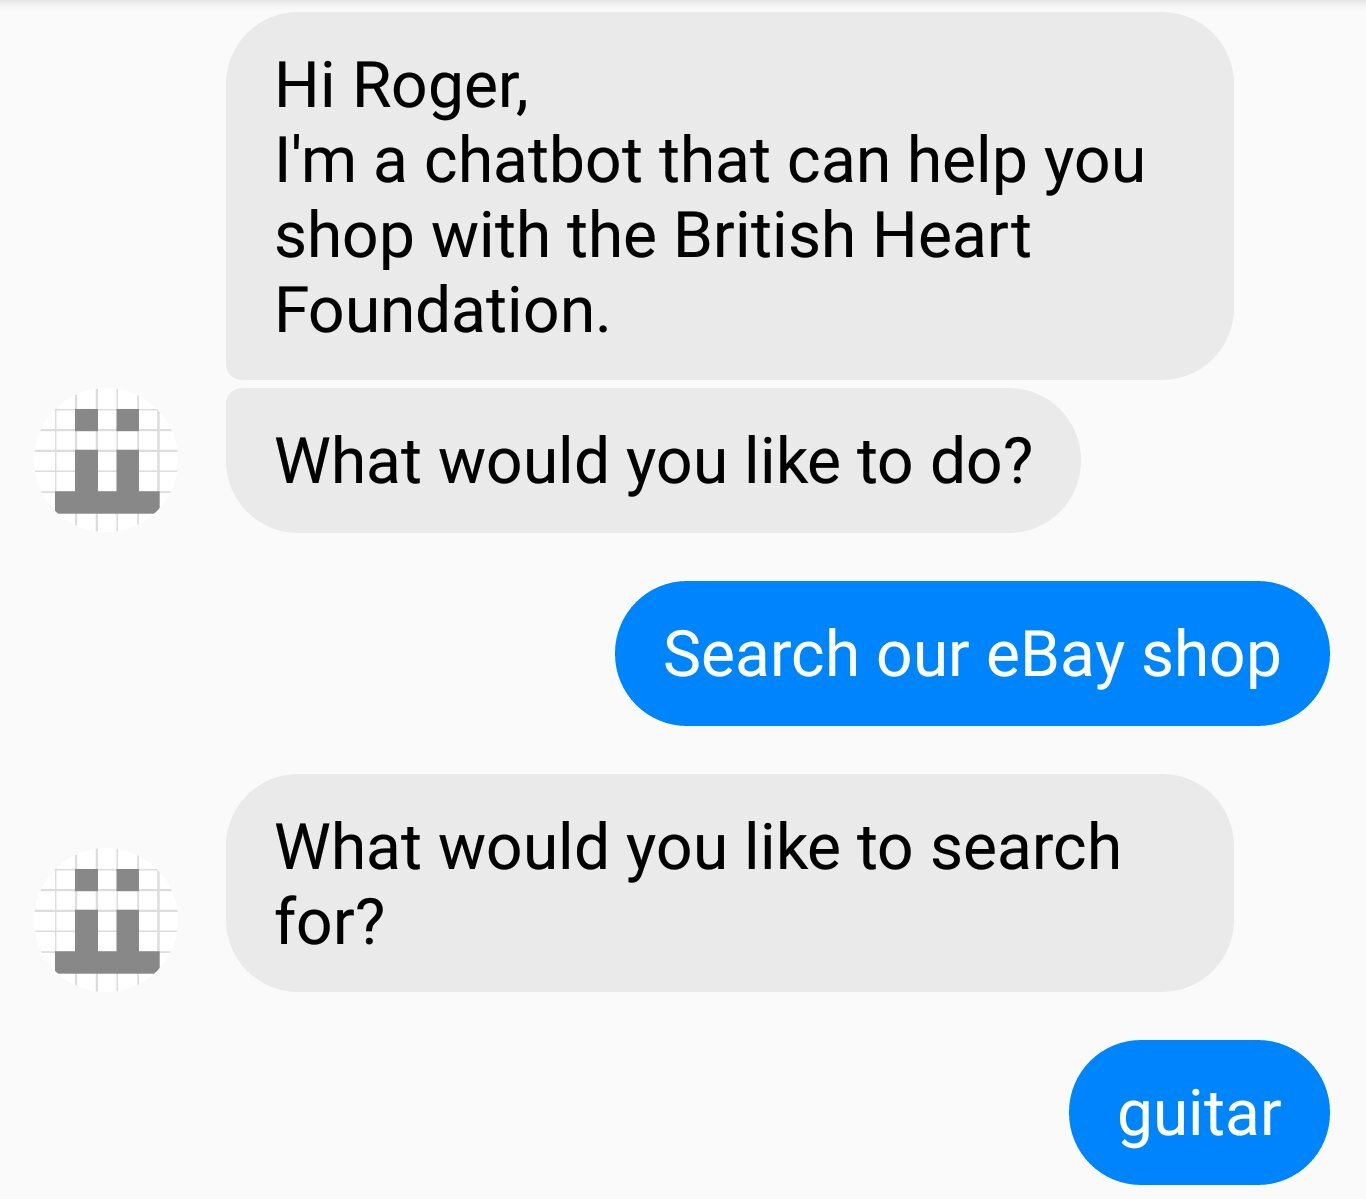 Ebaybot - Search for guitar